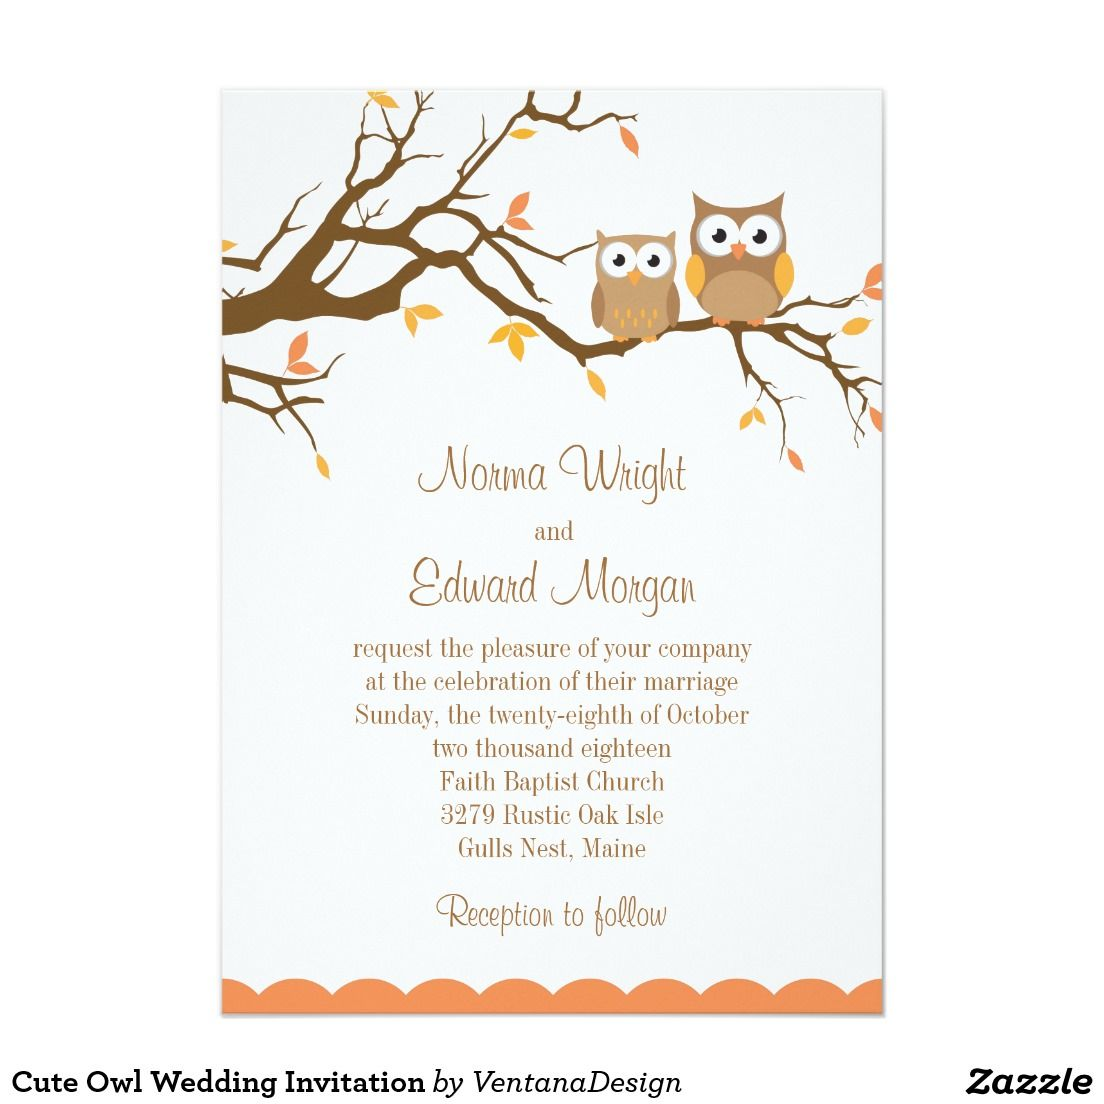 Cute Owl Wedding Invitation  Zazzle.com  Owl wedding, Wedding